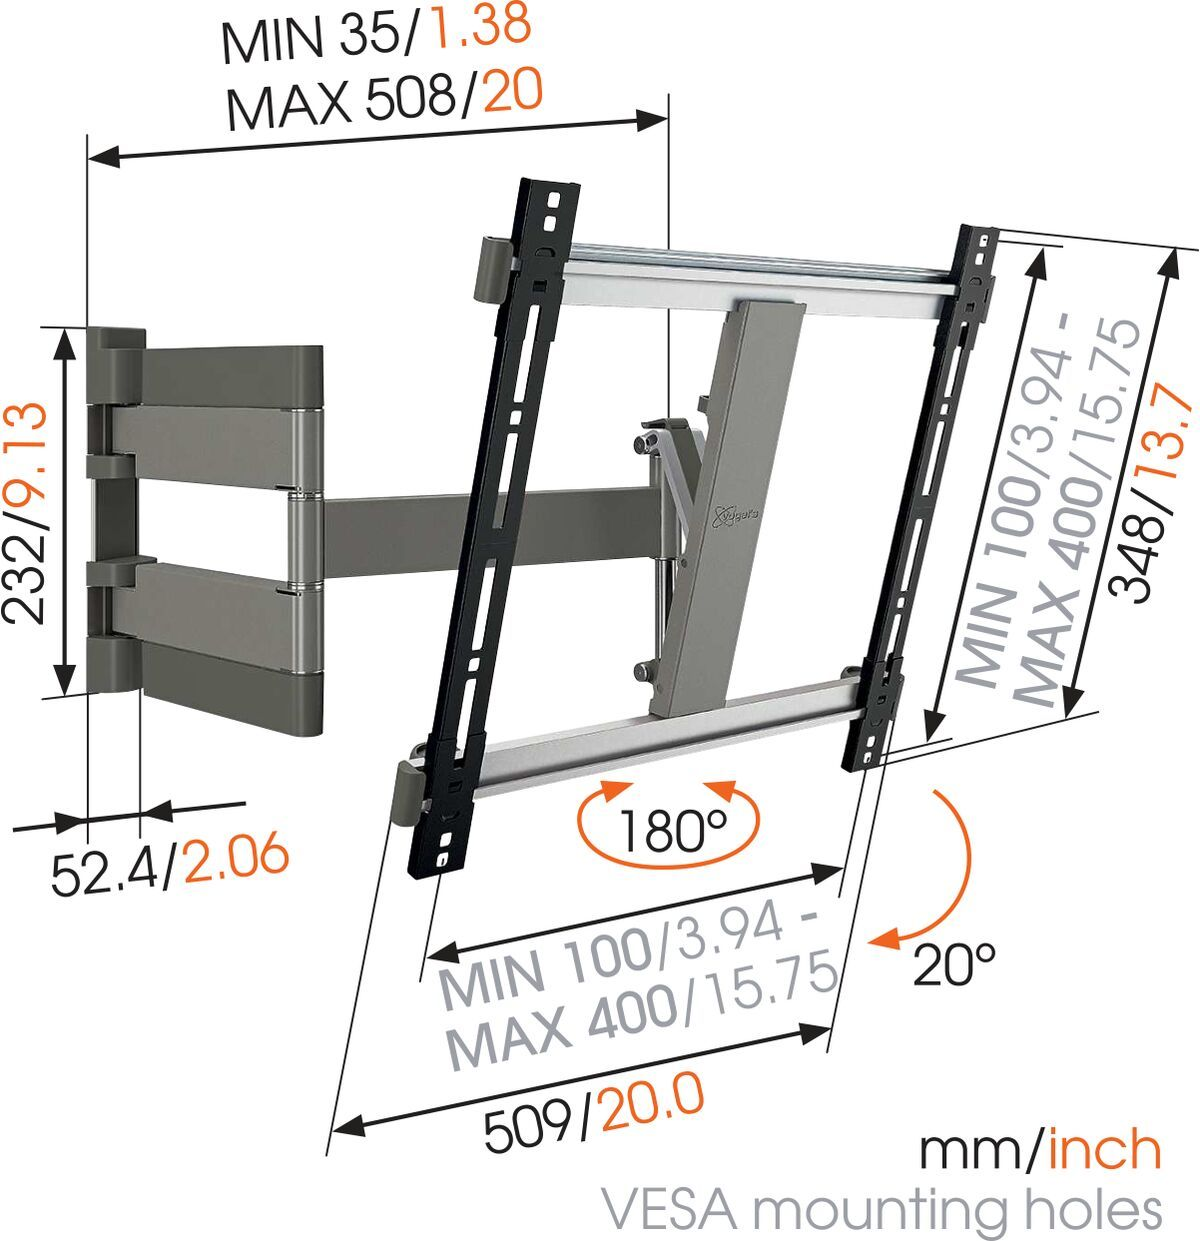 Vogel's THIN 245 UltraThin Full-Motion TV Wall Mount (black) - Suitable for 26 up to 55 inch TVs - Full motion (up to 180°) - Tilt up to 20° - Dimensions